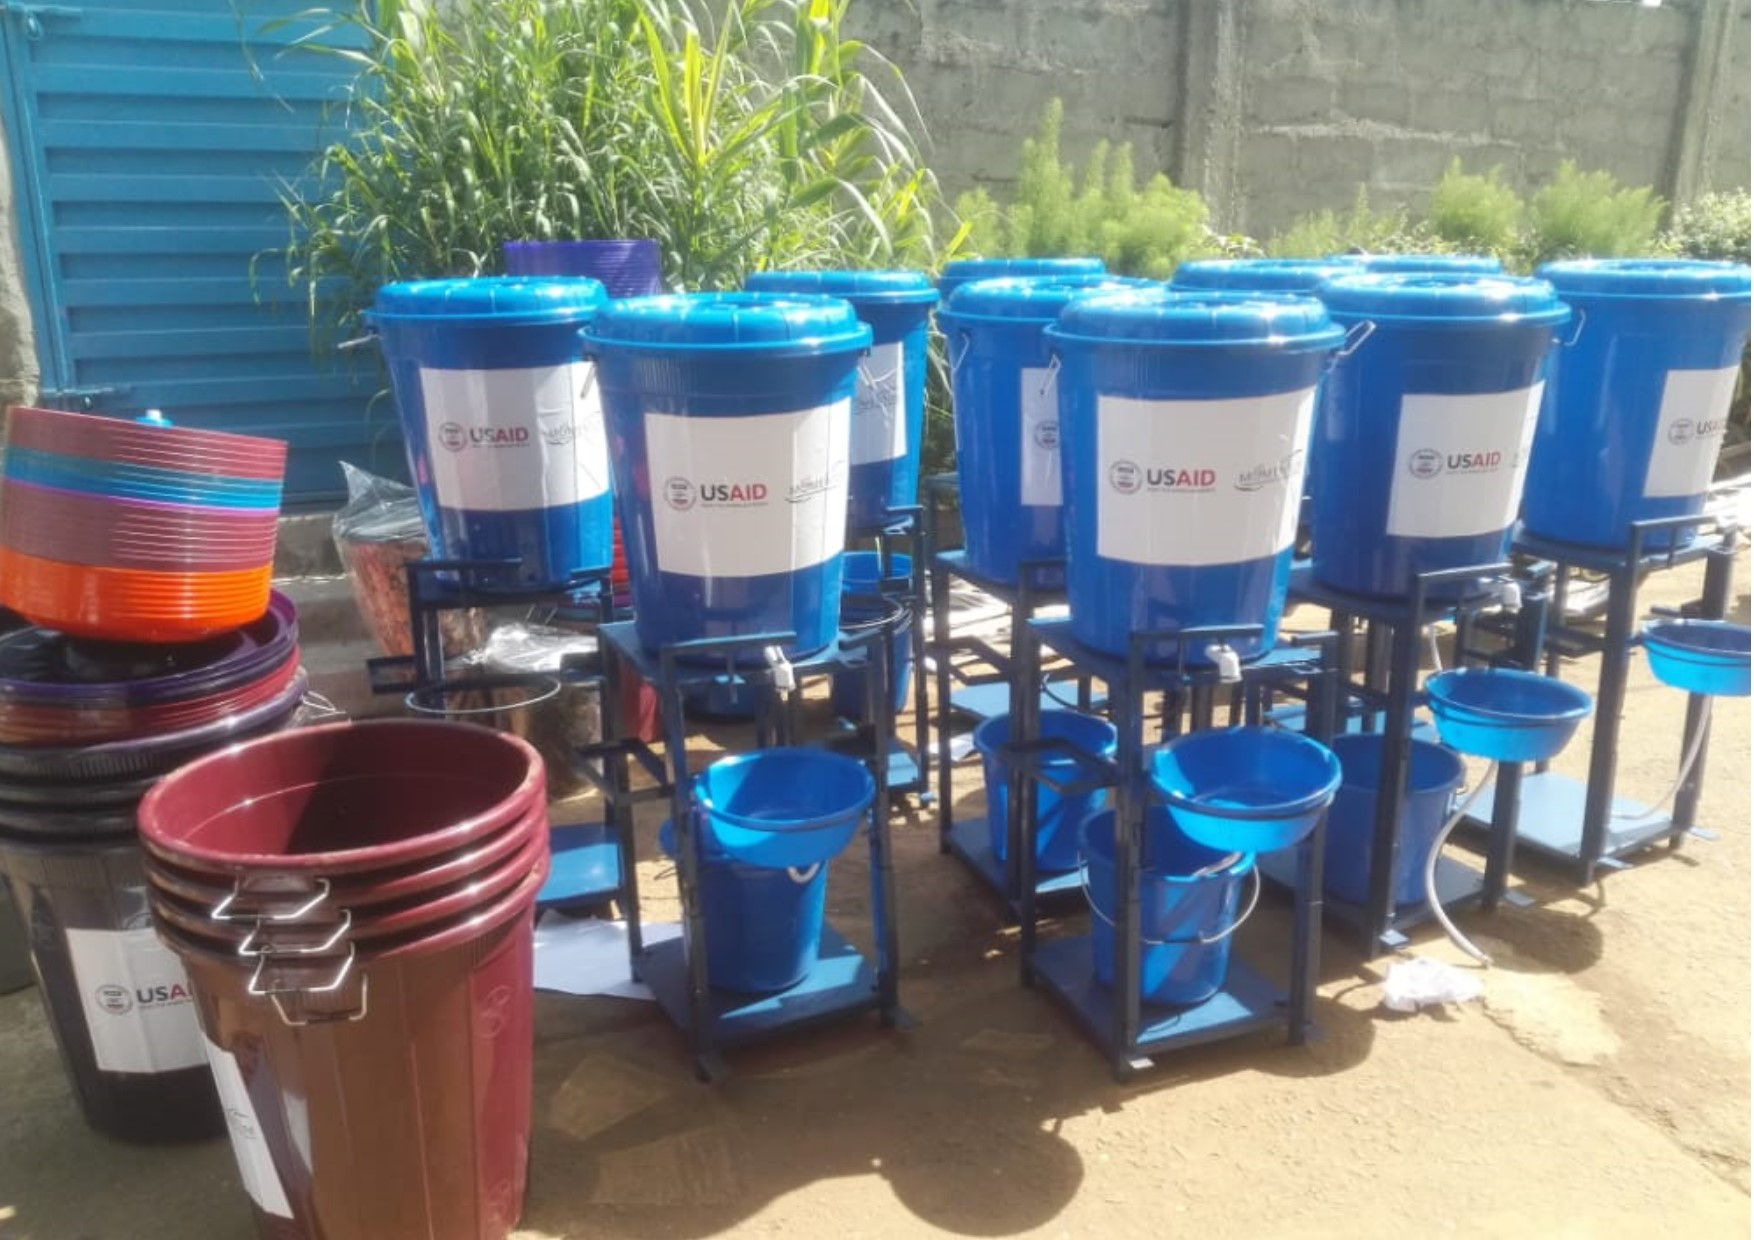 Blue Water containers for sanitization sit ready to be distributed throughout Sierra Leone.